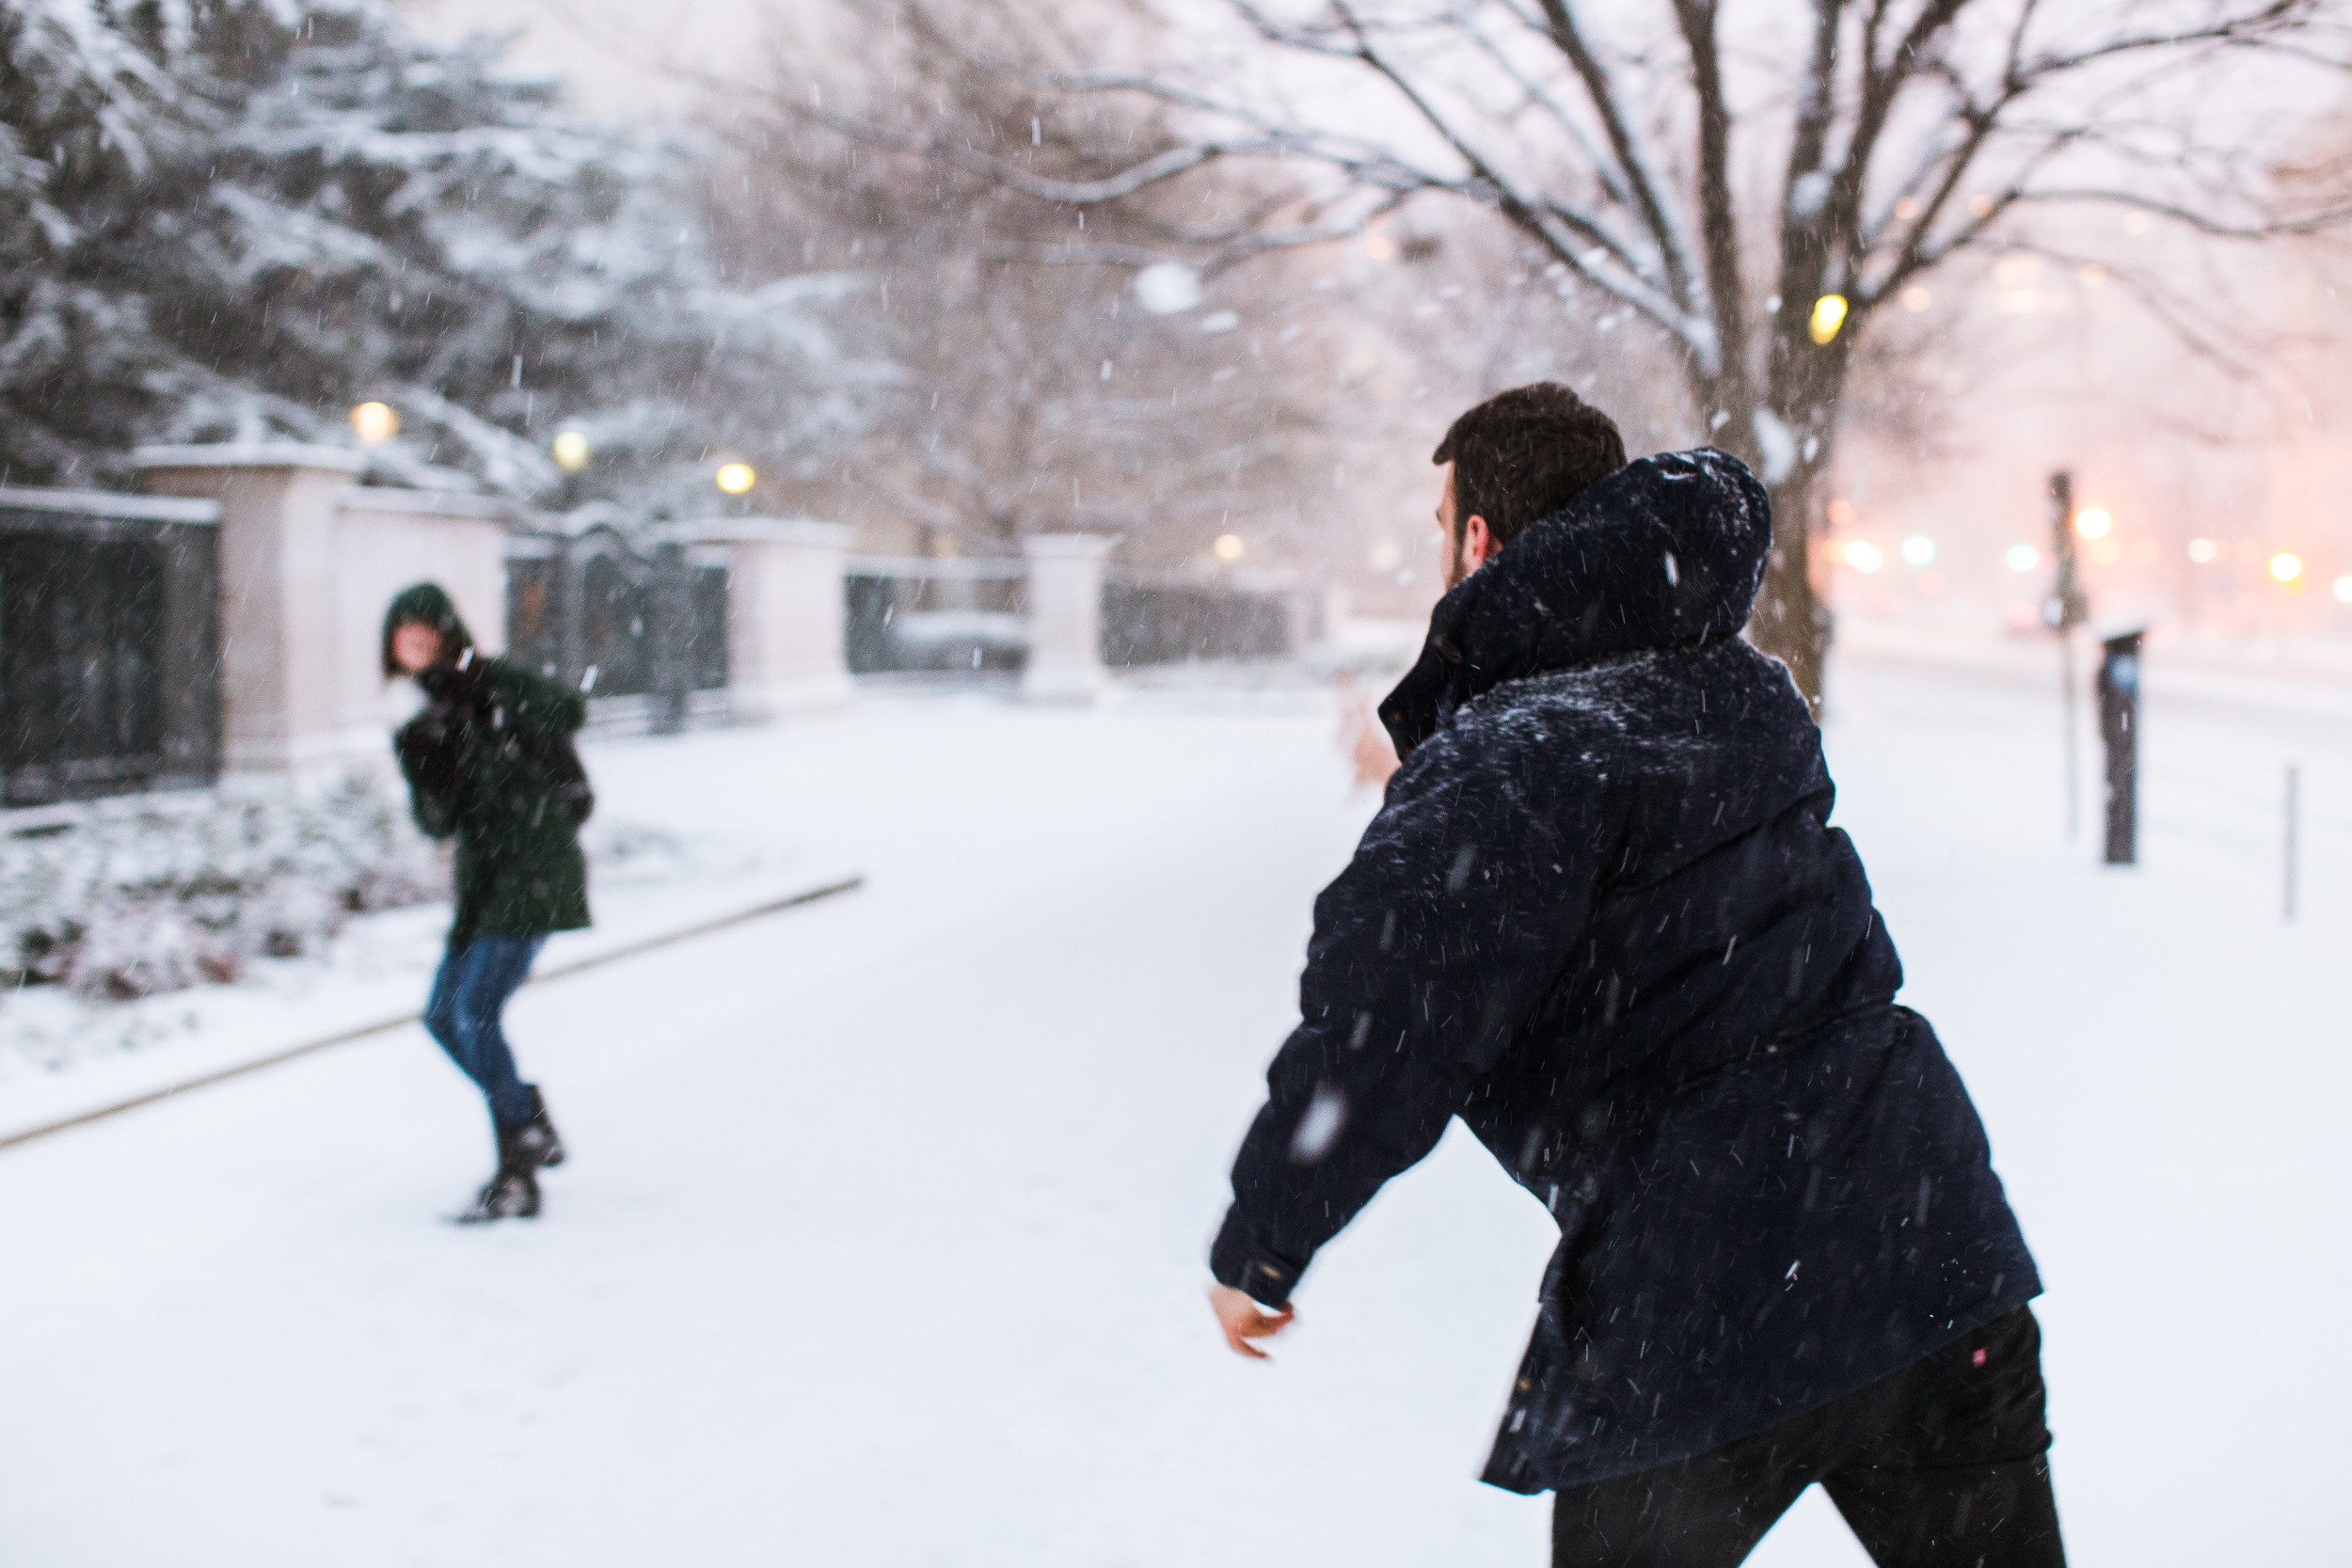 These lovely people moved here from California. This was their first blizzard but judging from his throwing technique, not their first snowball fight.